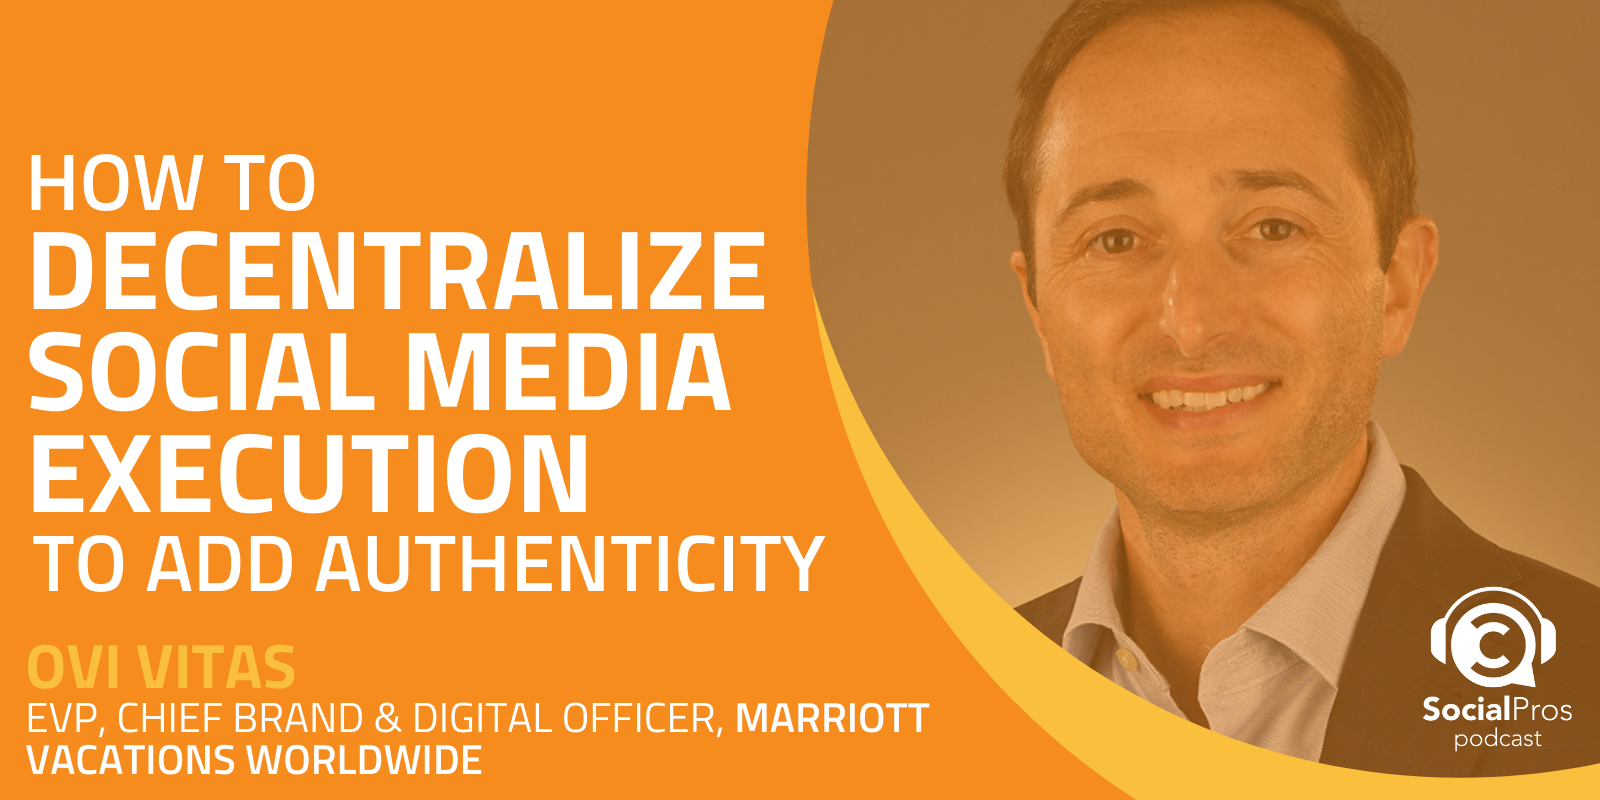 How to Decentralize Social Media Execution to Add Authenticity | Convince and Convert: Social Media Consulting and Content Marketing Consulting